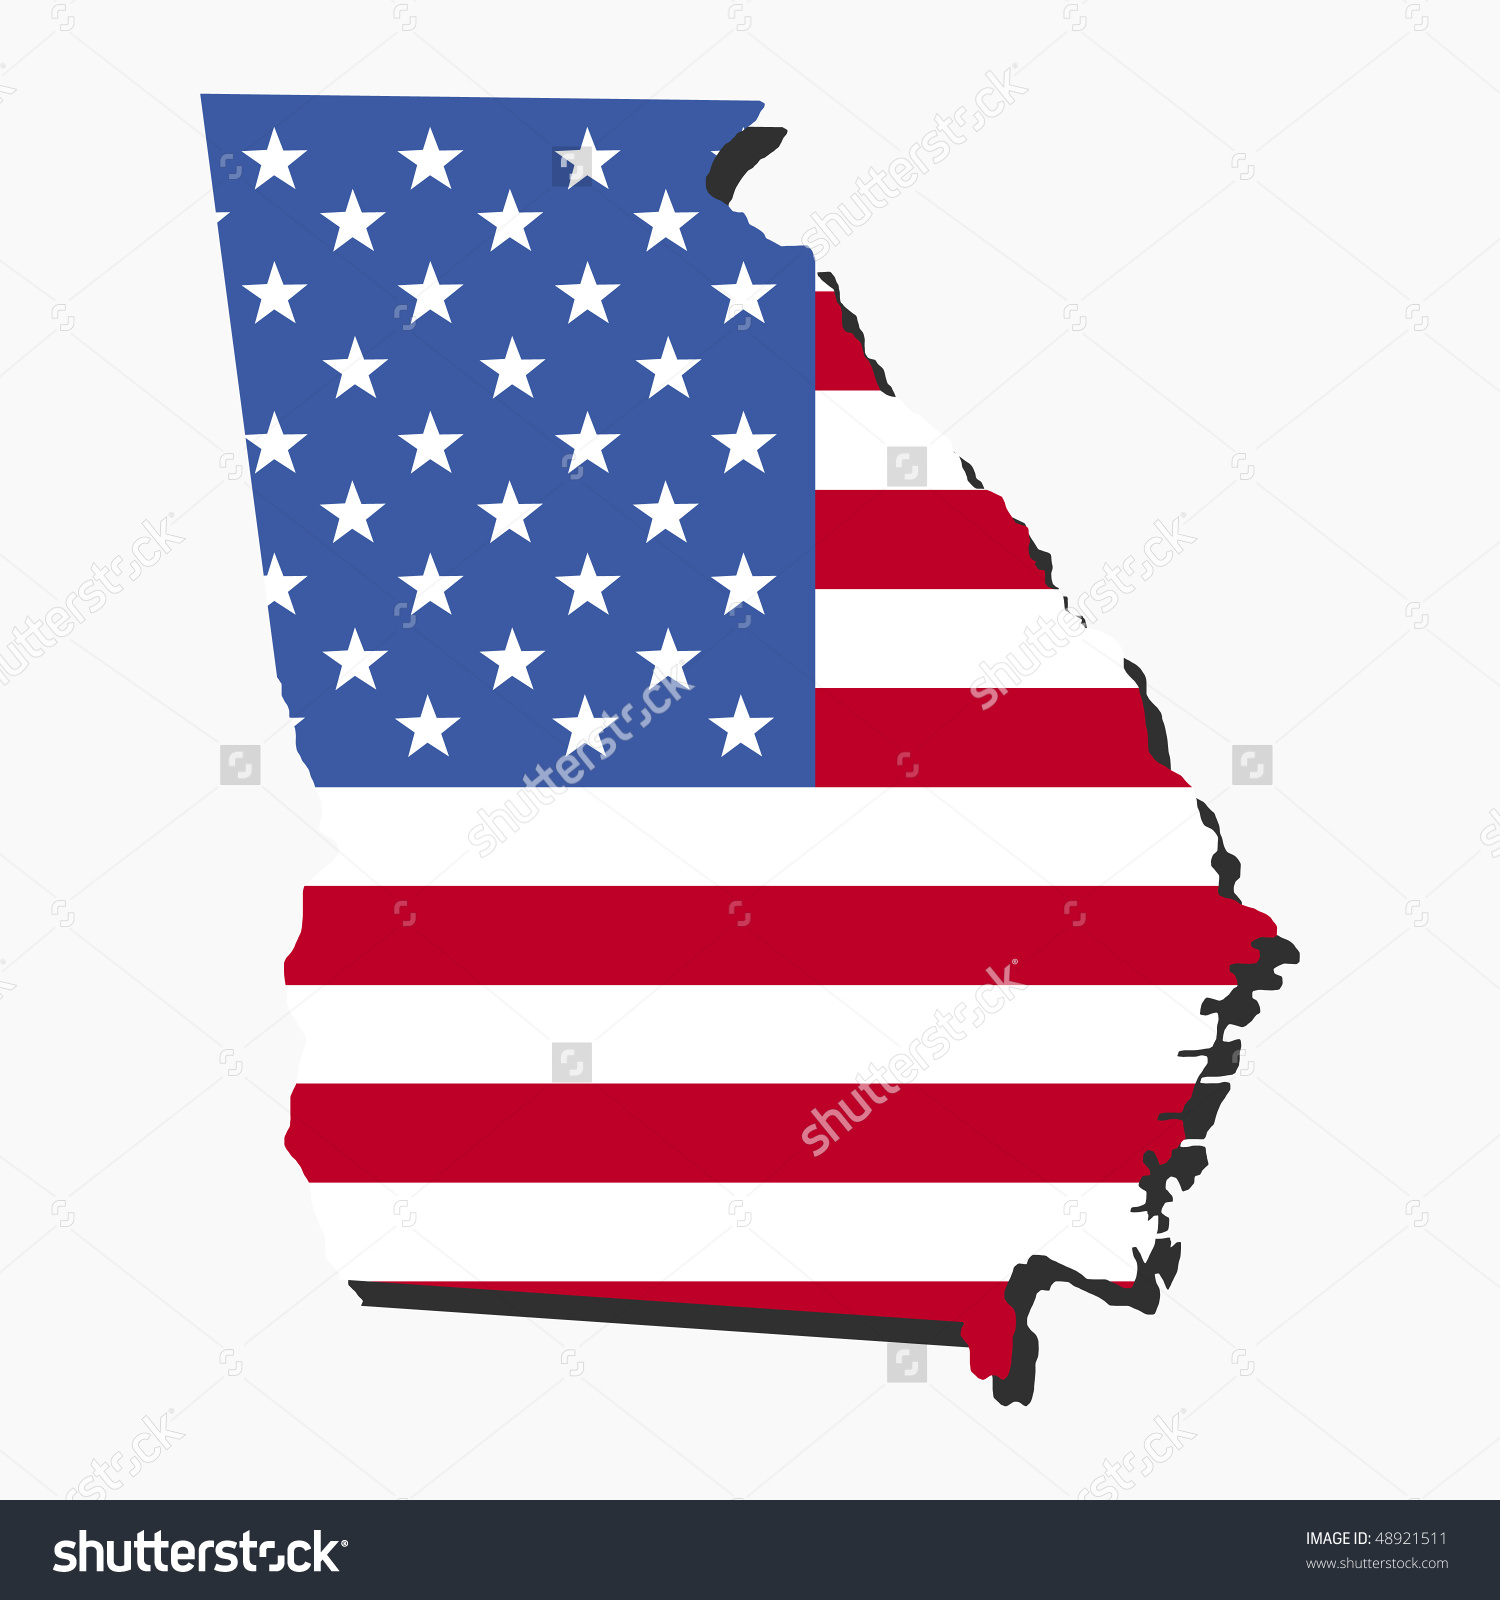 Georgia on us map clipart graphic stock Us and georgia flag clipart - ClipartFest graphic stock